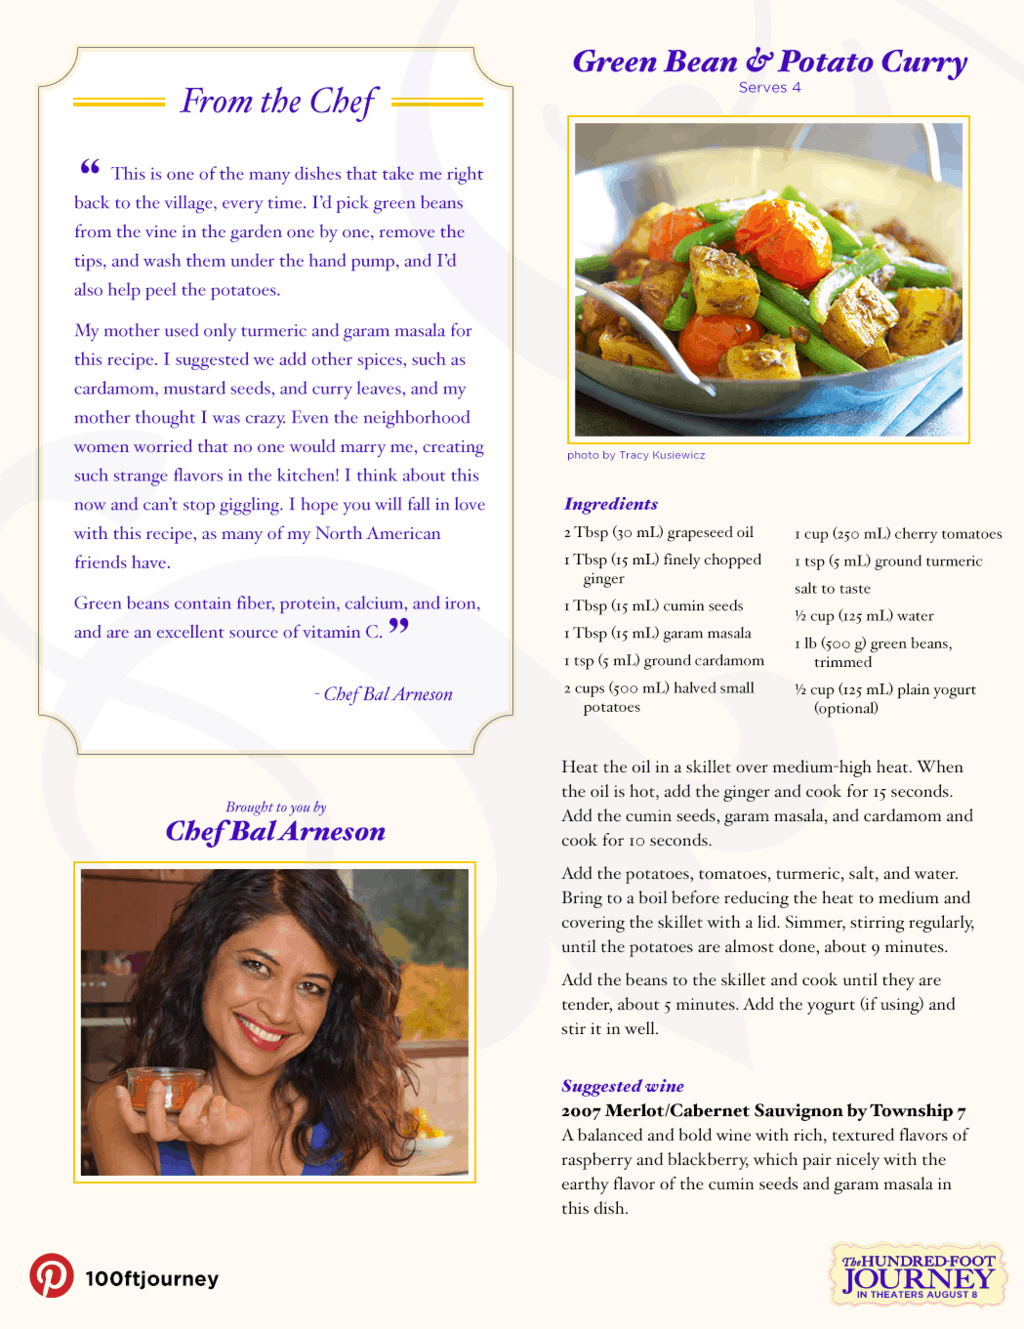 Green Bean and Potato Curry Recipe from THE HUNDRED-FOOT JOURNEY #100FootJourneyEvent